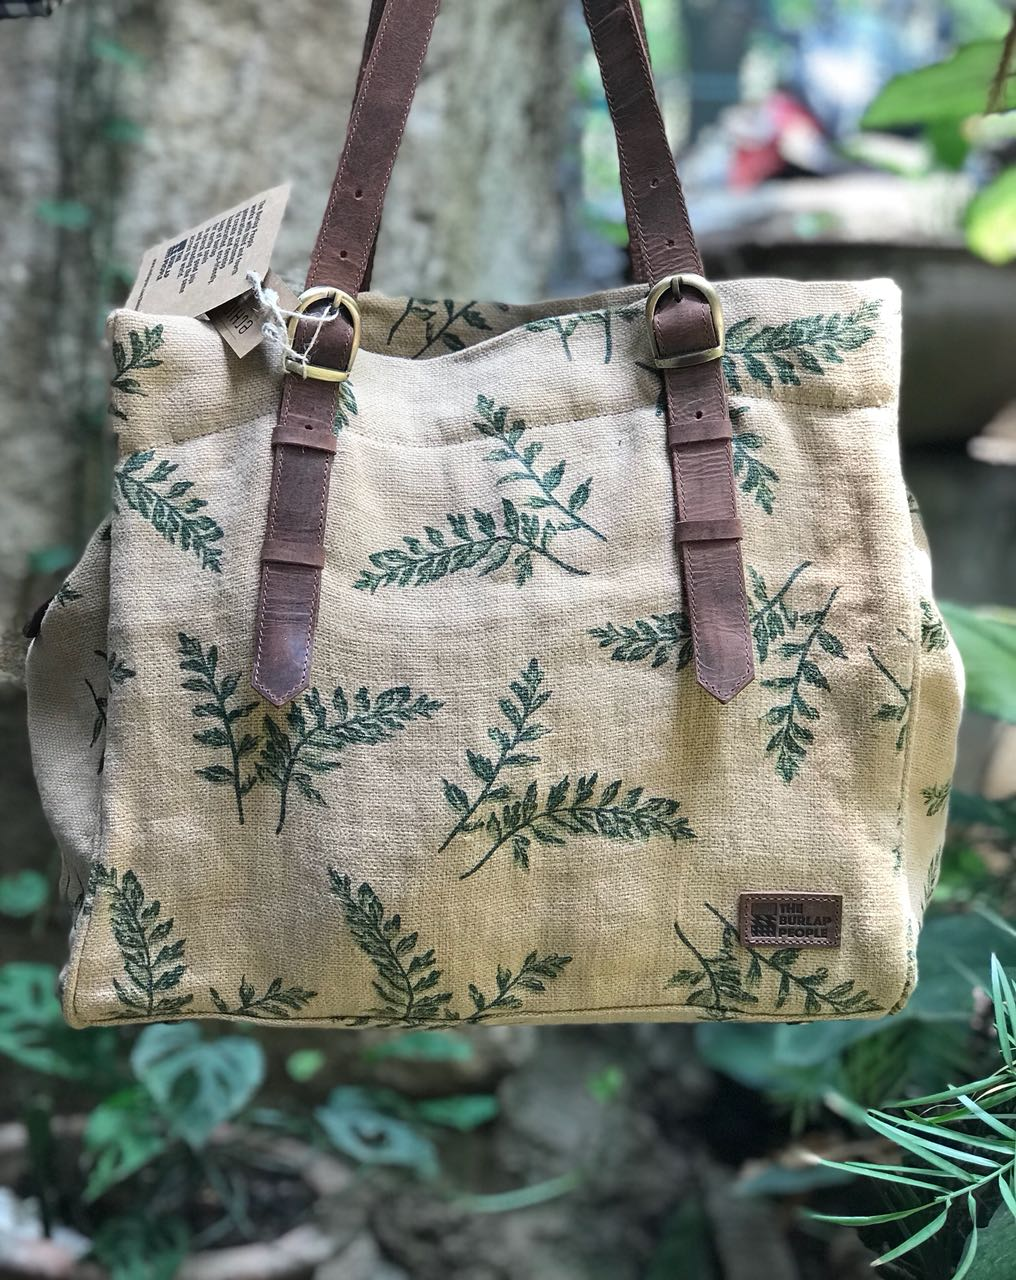 Boyfriend bag in Tulsi Print